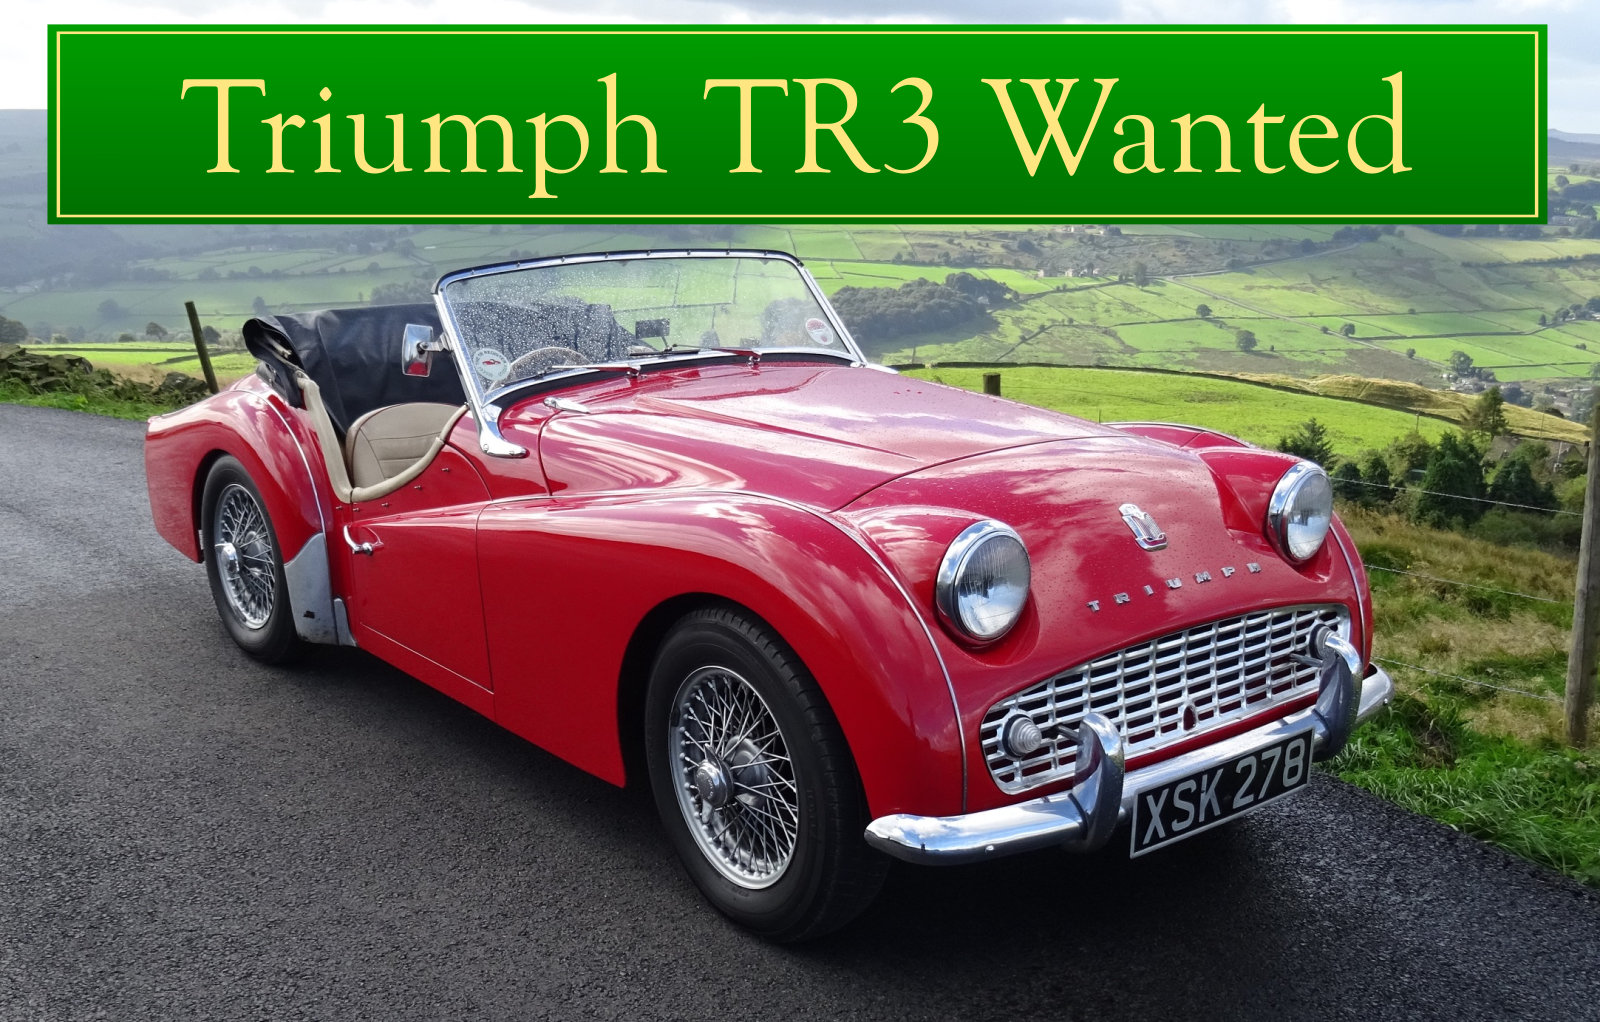 1956 TRIUMPH TR3 WANTED, CLASSIC CARS WANTED, QUICK PAYMENT Wanted (picture 1 of 6)